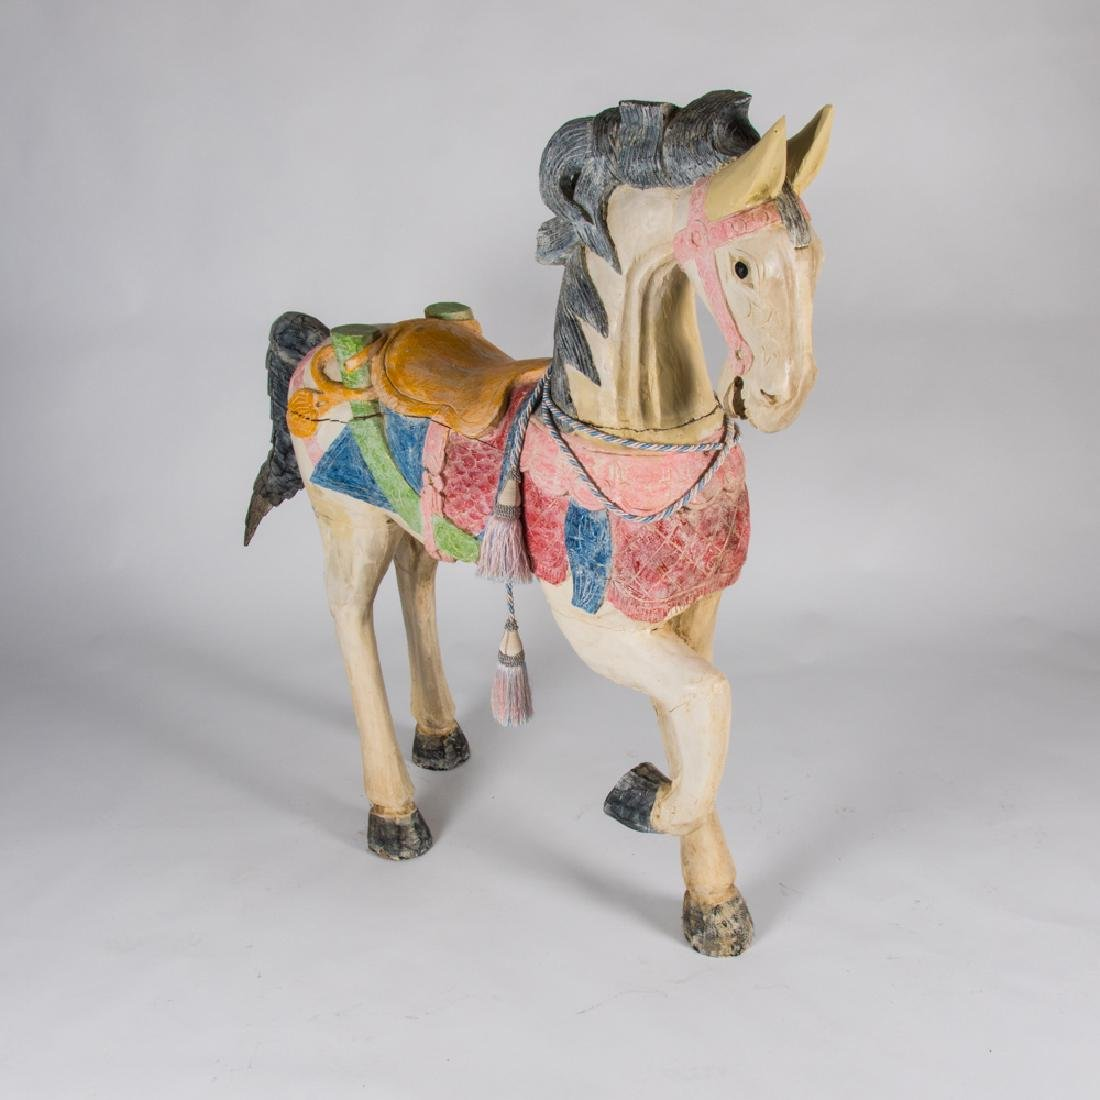 A Carved and Painted Hardwood Carousel Horse, 20th